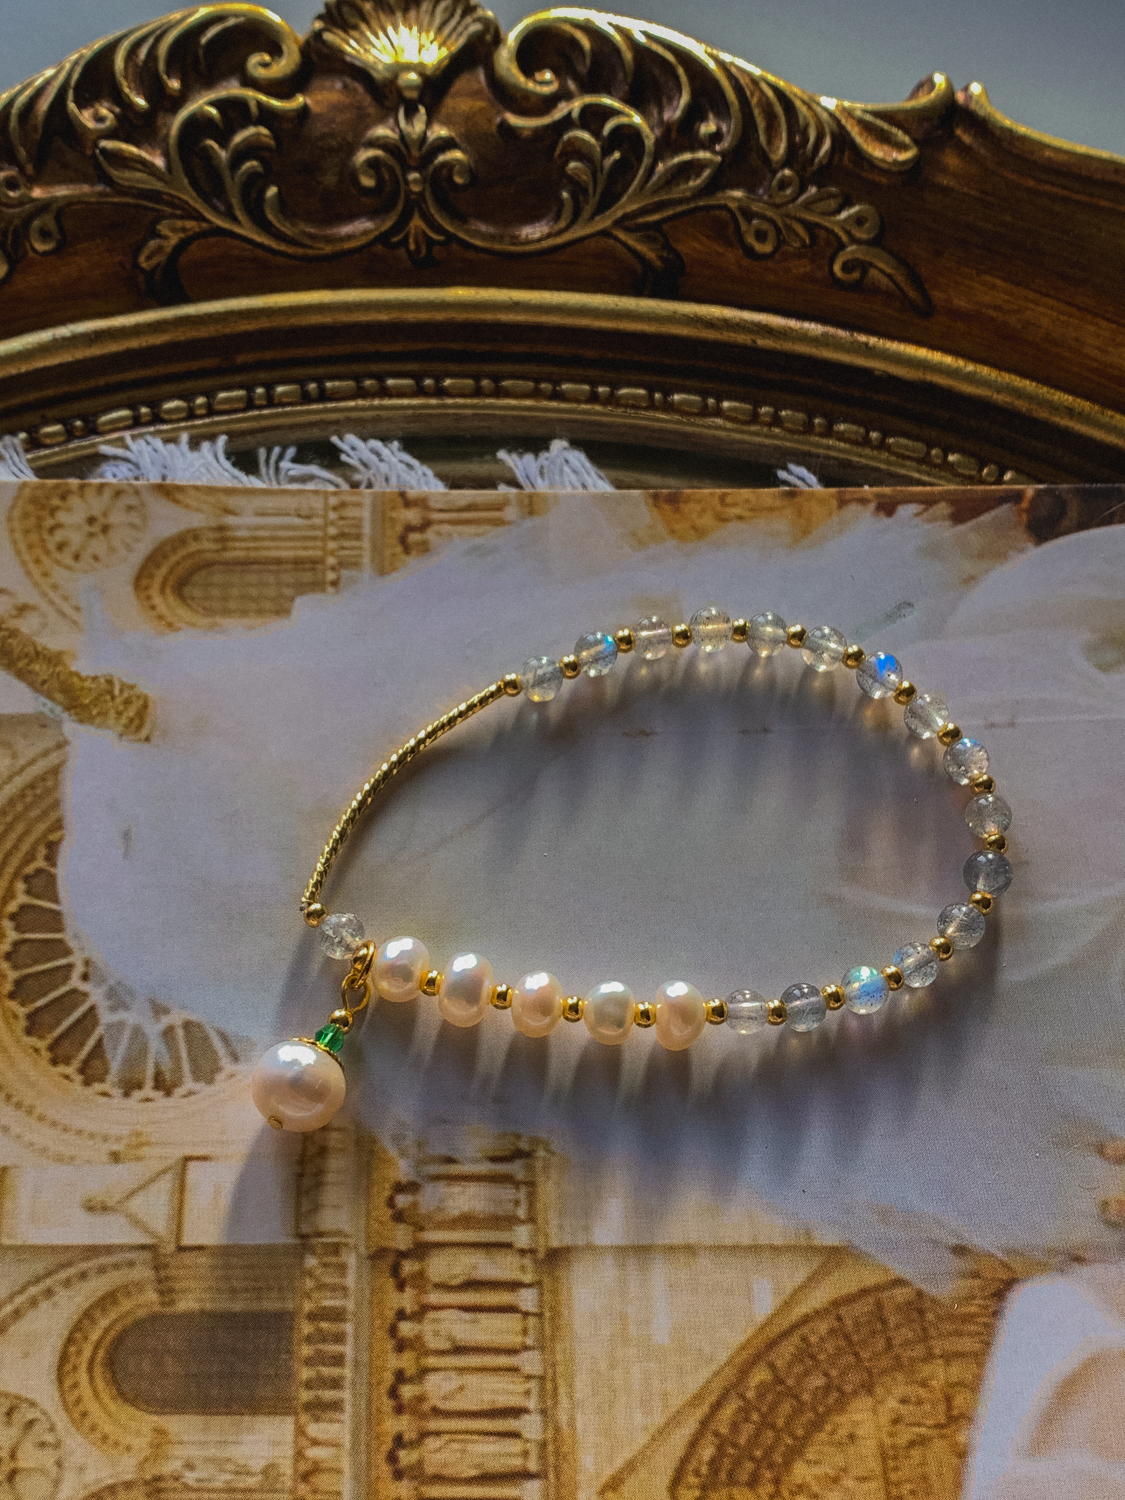 Discount in] silver moonlight ~ hand made natural pearl moonlight elongated stone moonlight stone bracelet bracelet Art